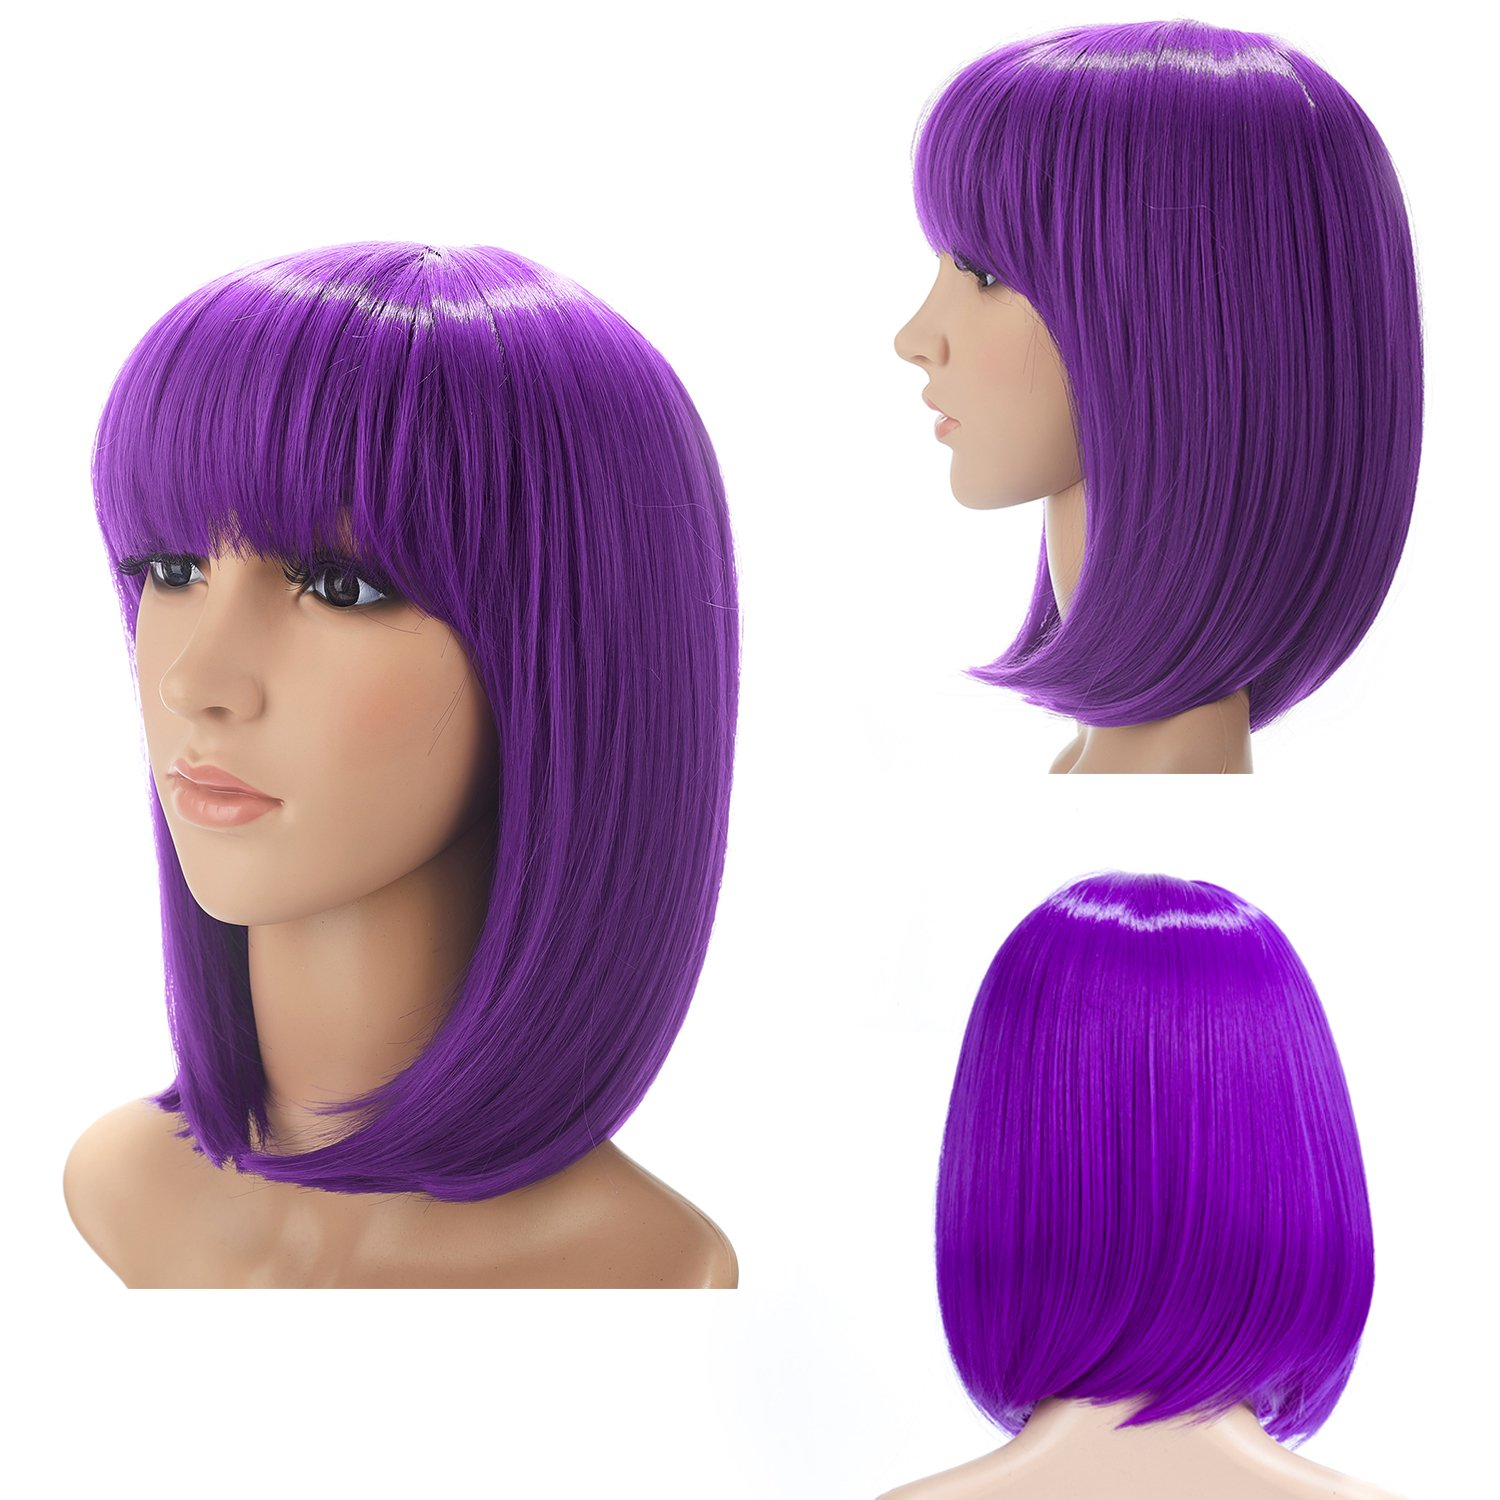 H&N Hair Short Bob Wigs With Bangs 13'' Straight Synthetic Colorful Cosplay Daily Party Wig For Women Natural As Real Hair + Free Wig Cap (Purple)